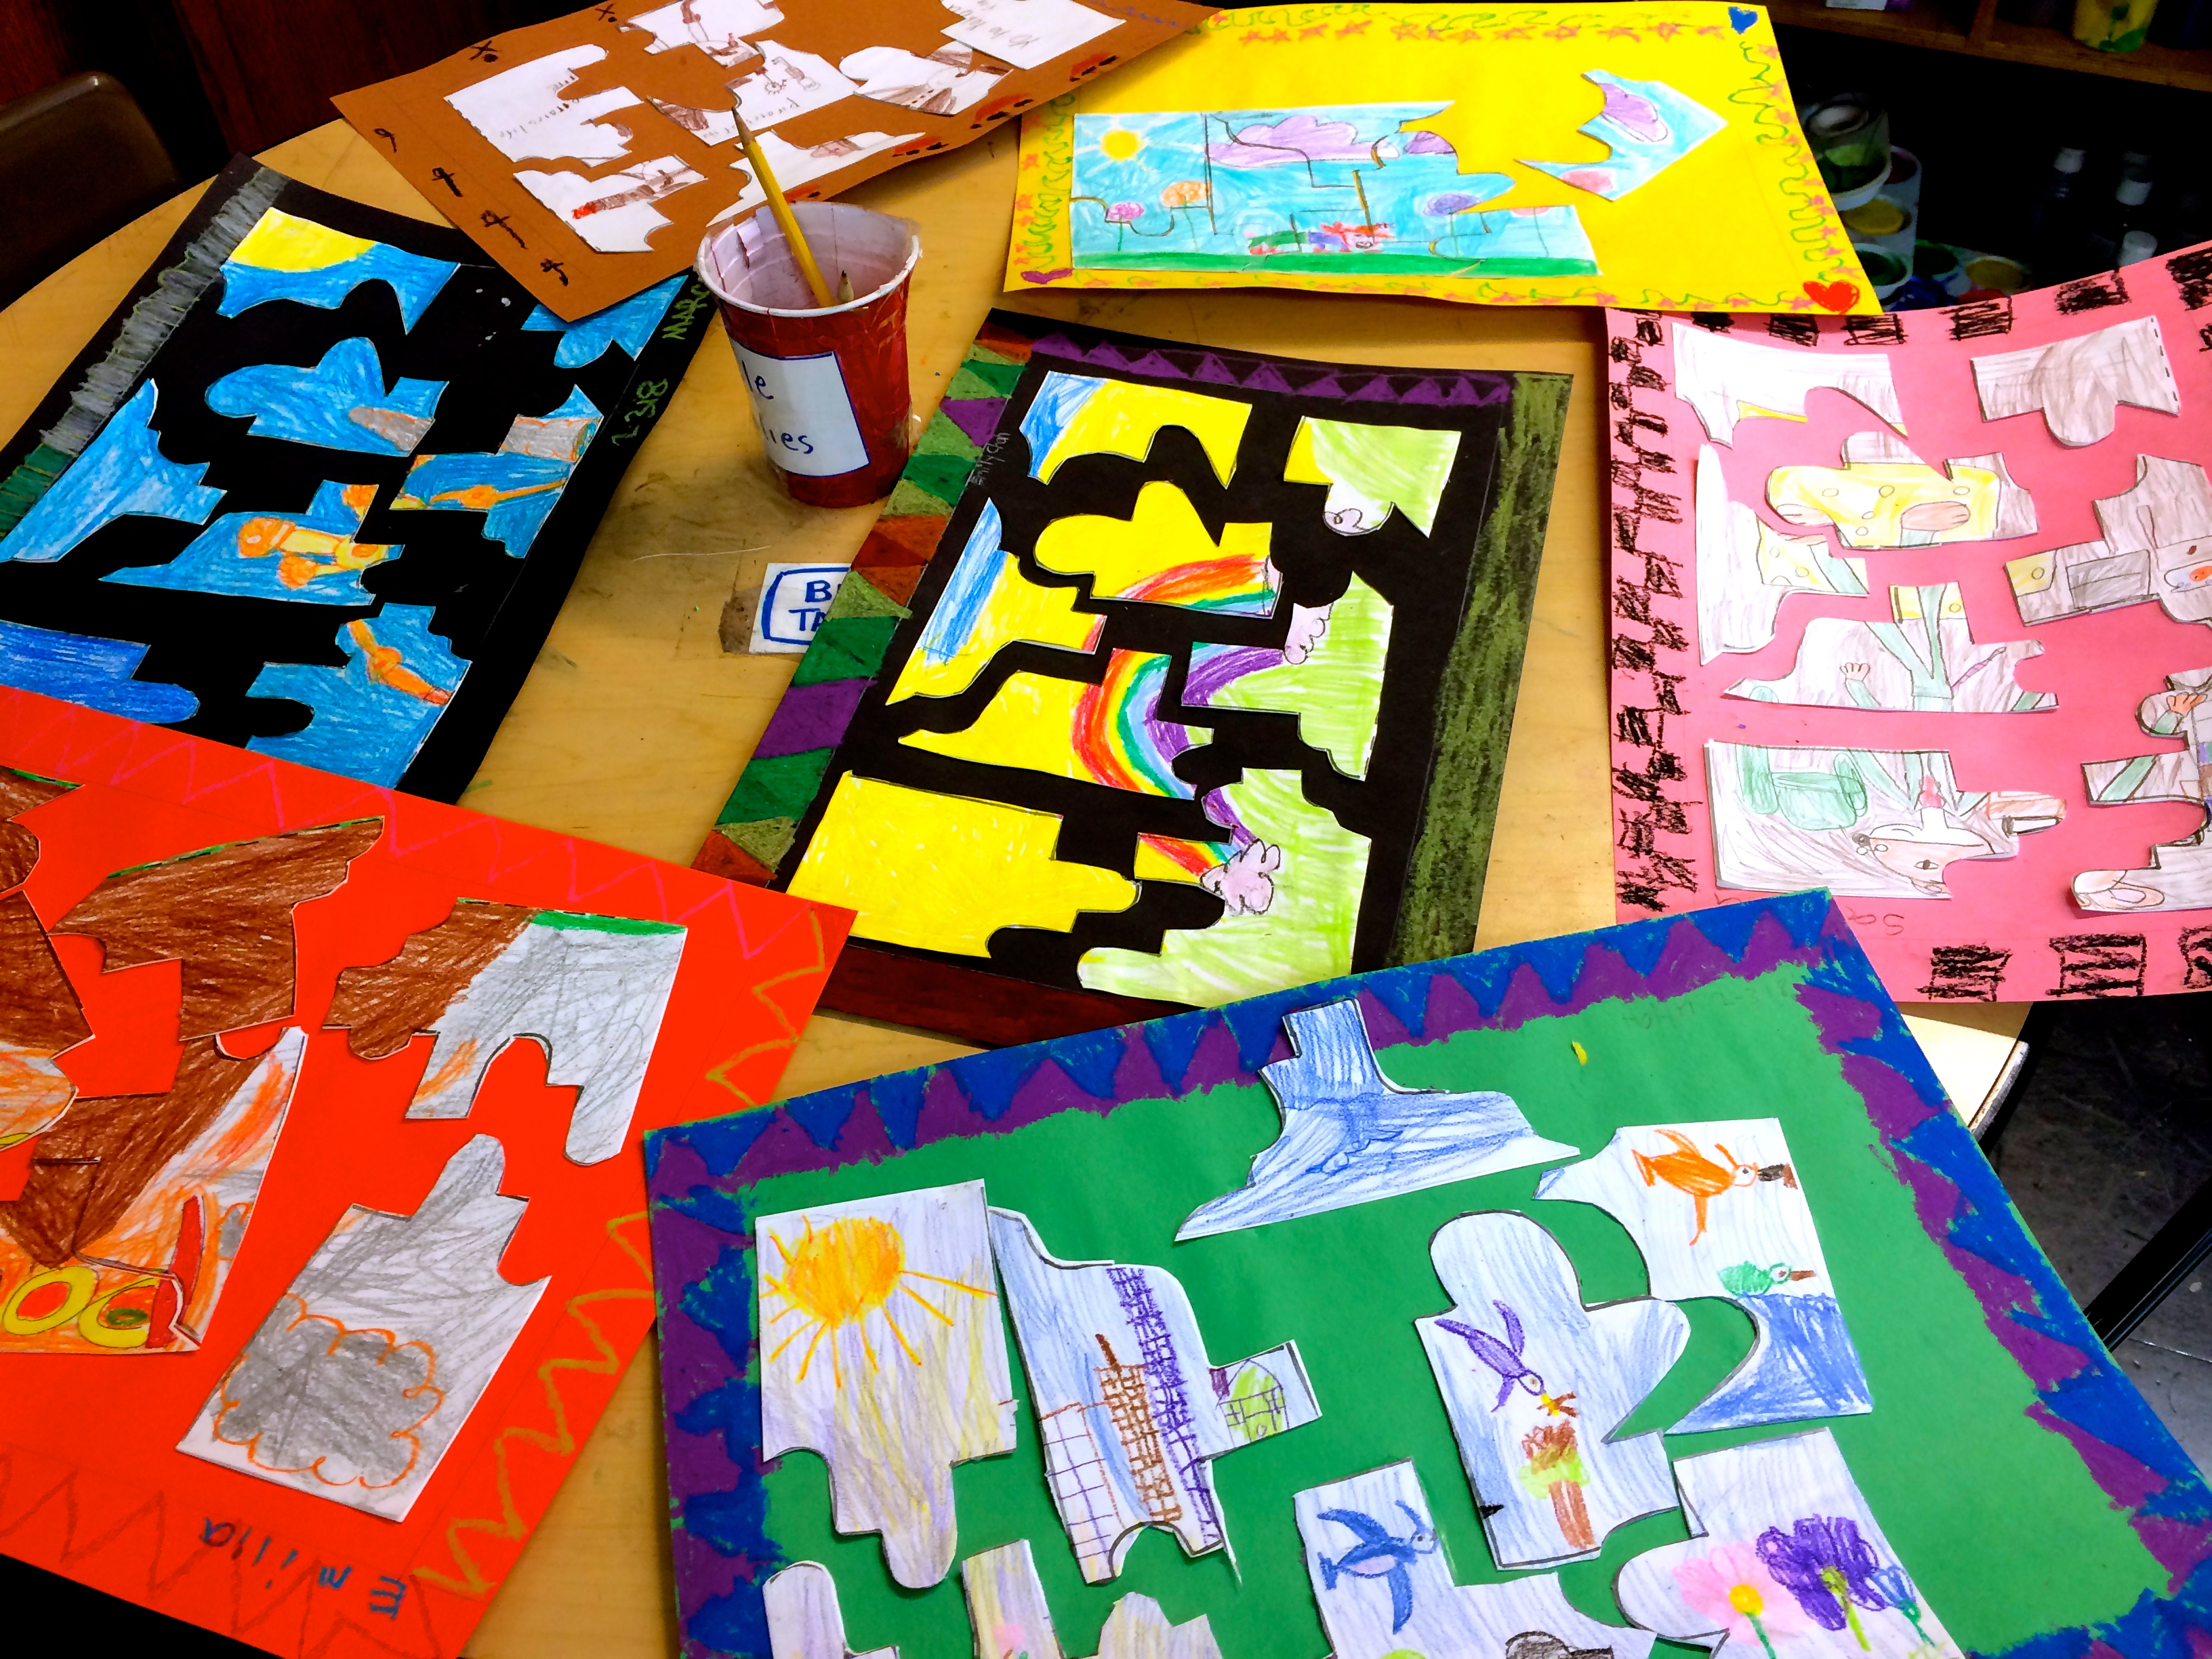 Puzzles. Mixed Media Collage, crayons on tagboard. (Grade 2)